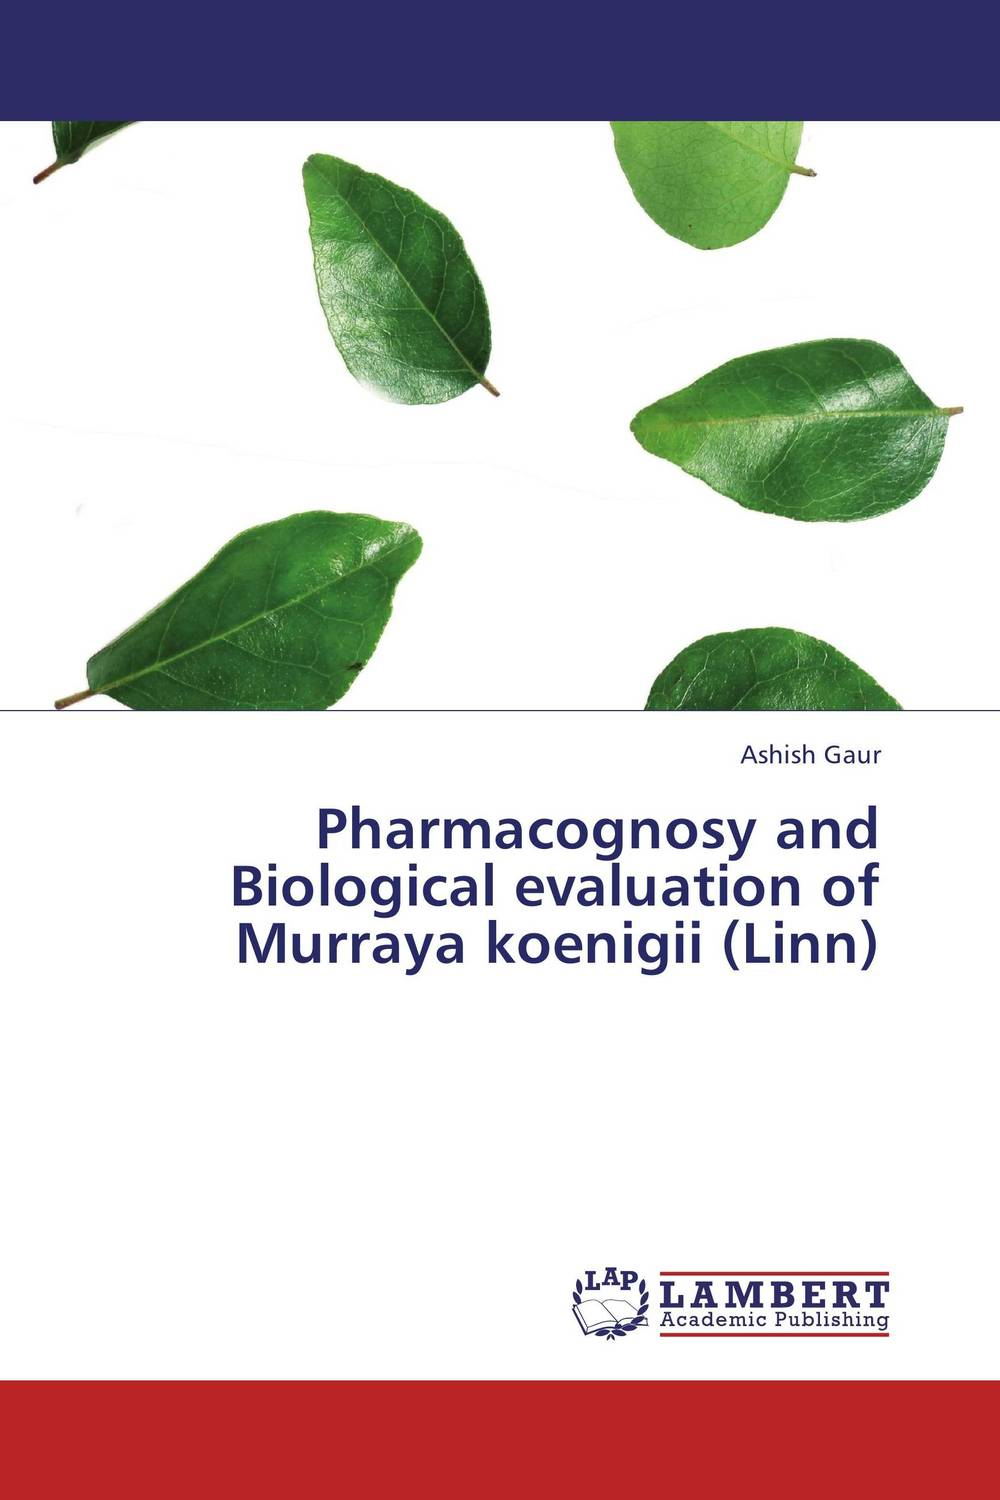 Pharmacognosy and Biological evaluation of Murraya koenigii (Linn) md rabiul islam s m ibrahim sumon and farhana lipi phytochemical evaluation of leaves of cymbopogan citratus